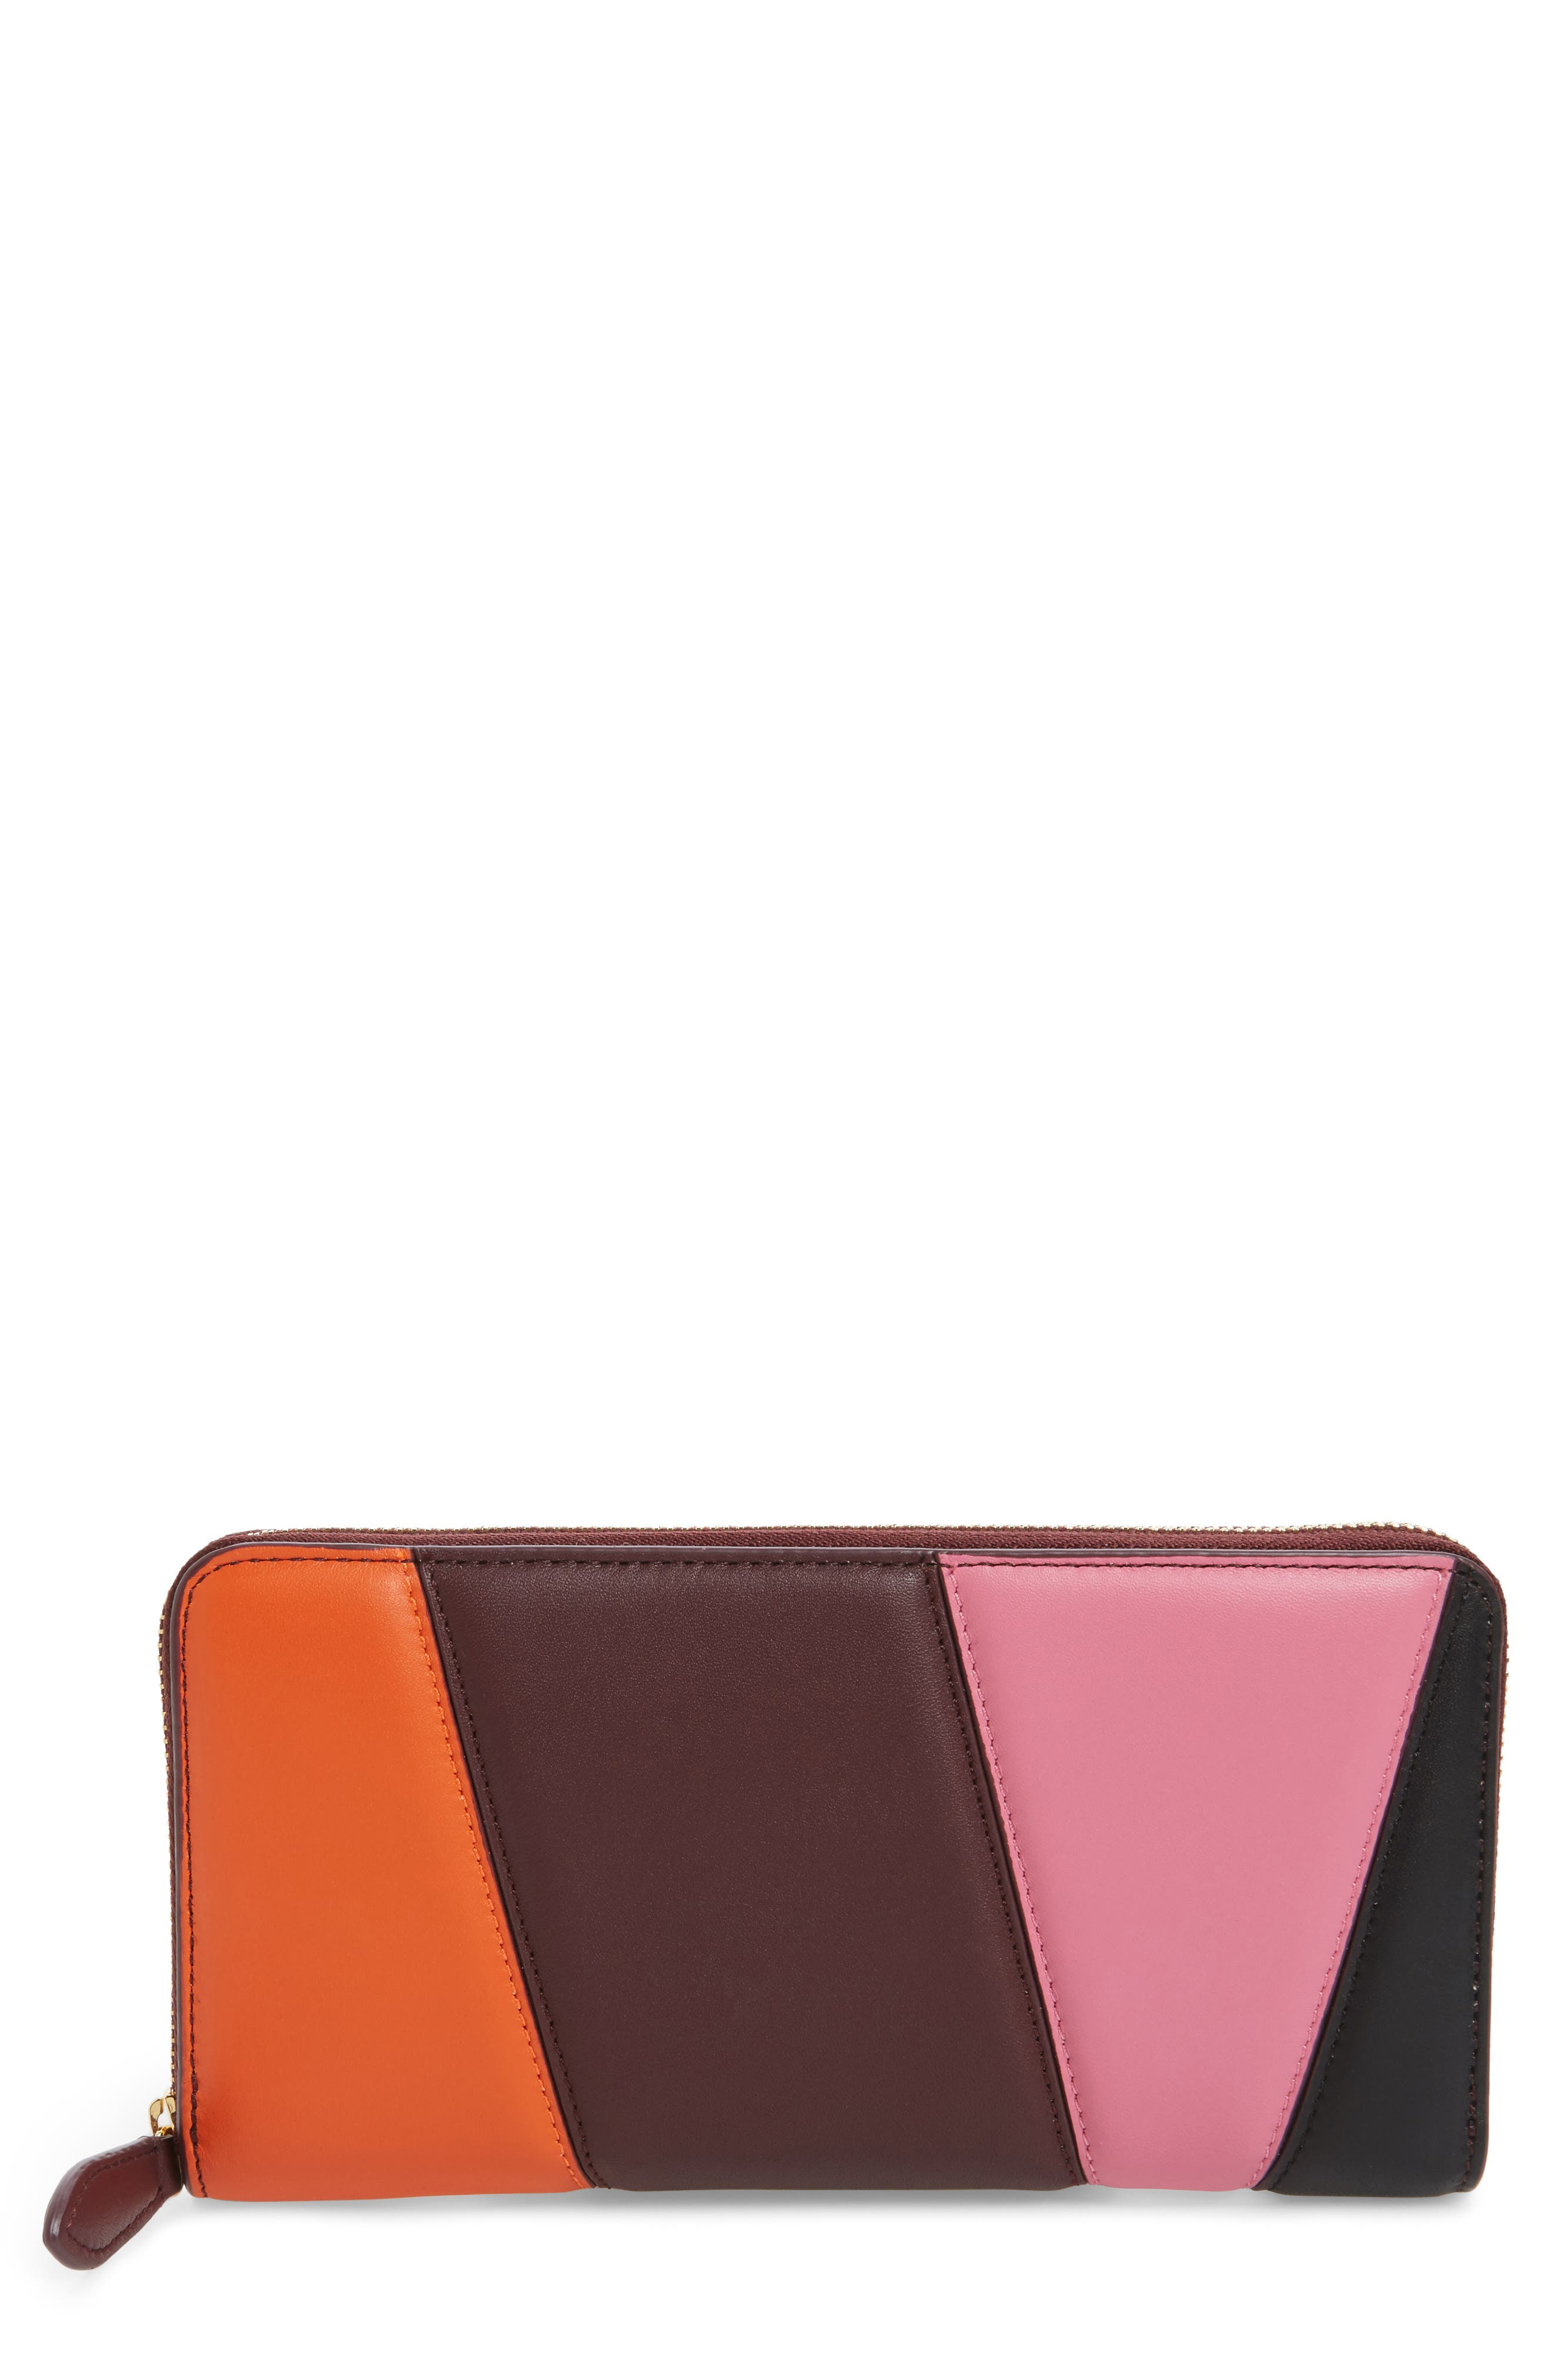 Diane von Furstenberg Colorblock Leather Continental Wallet